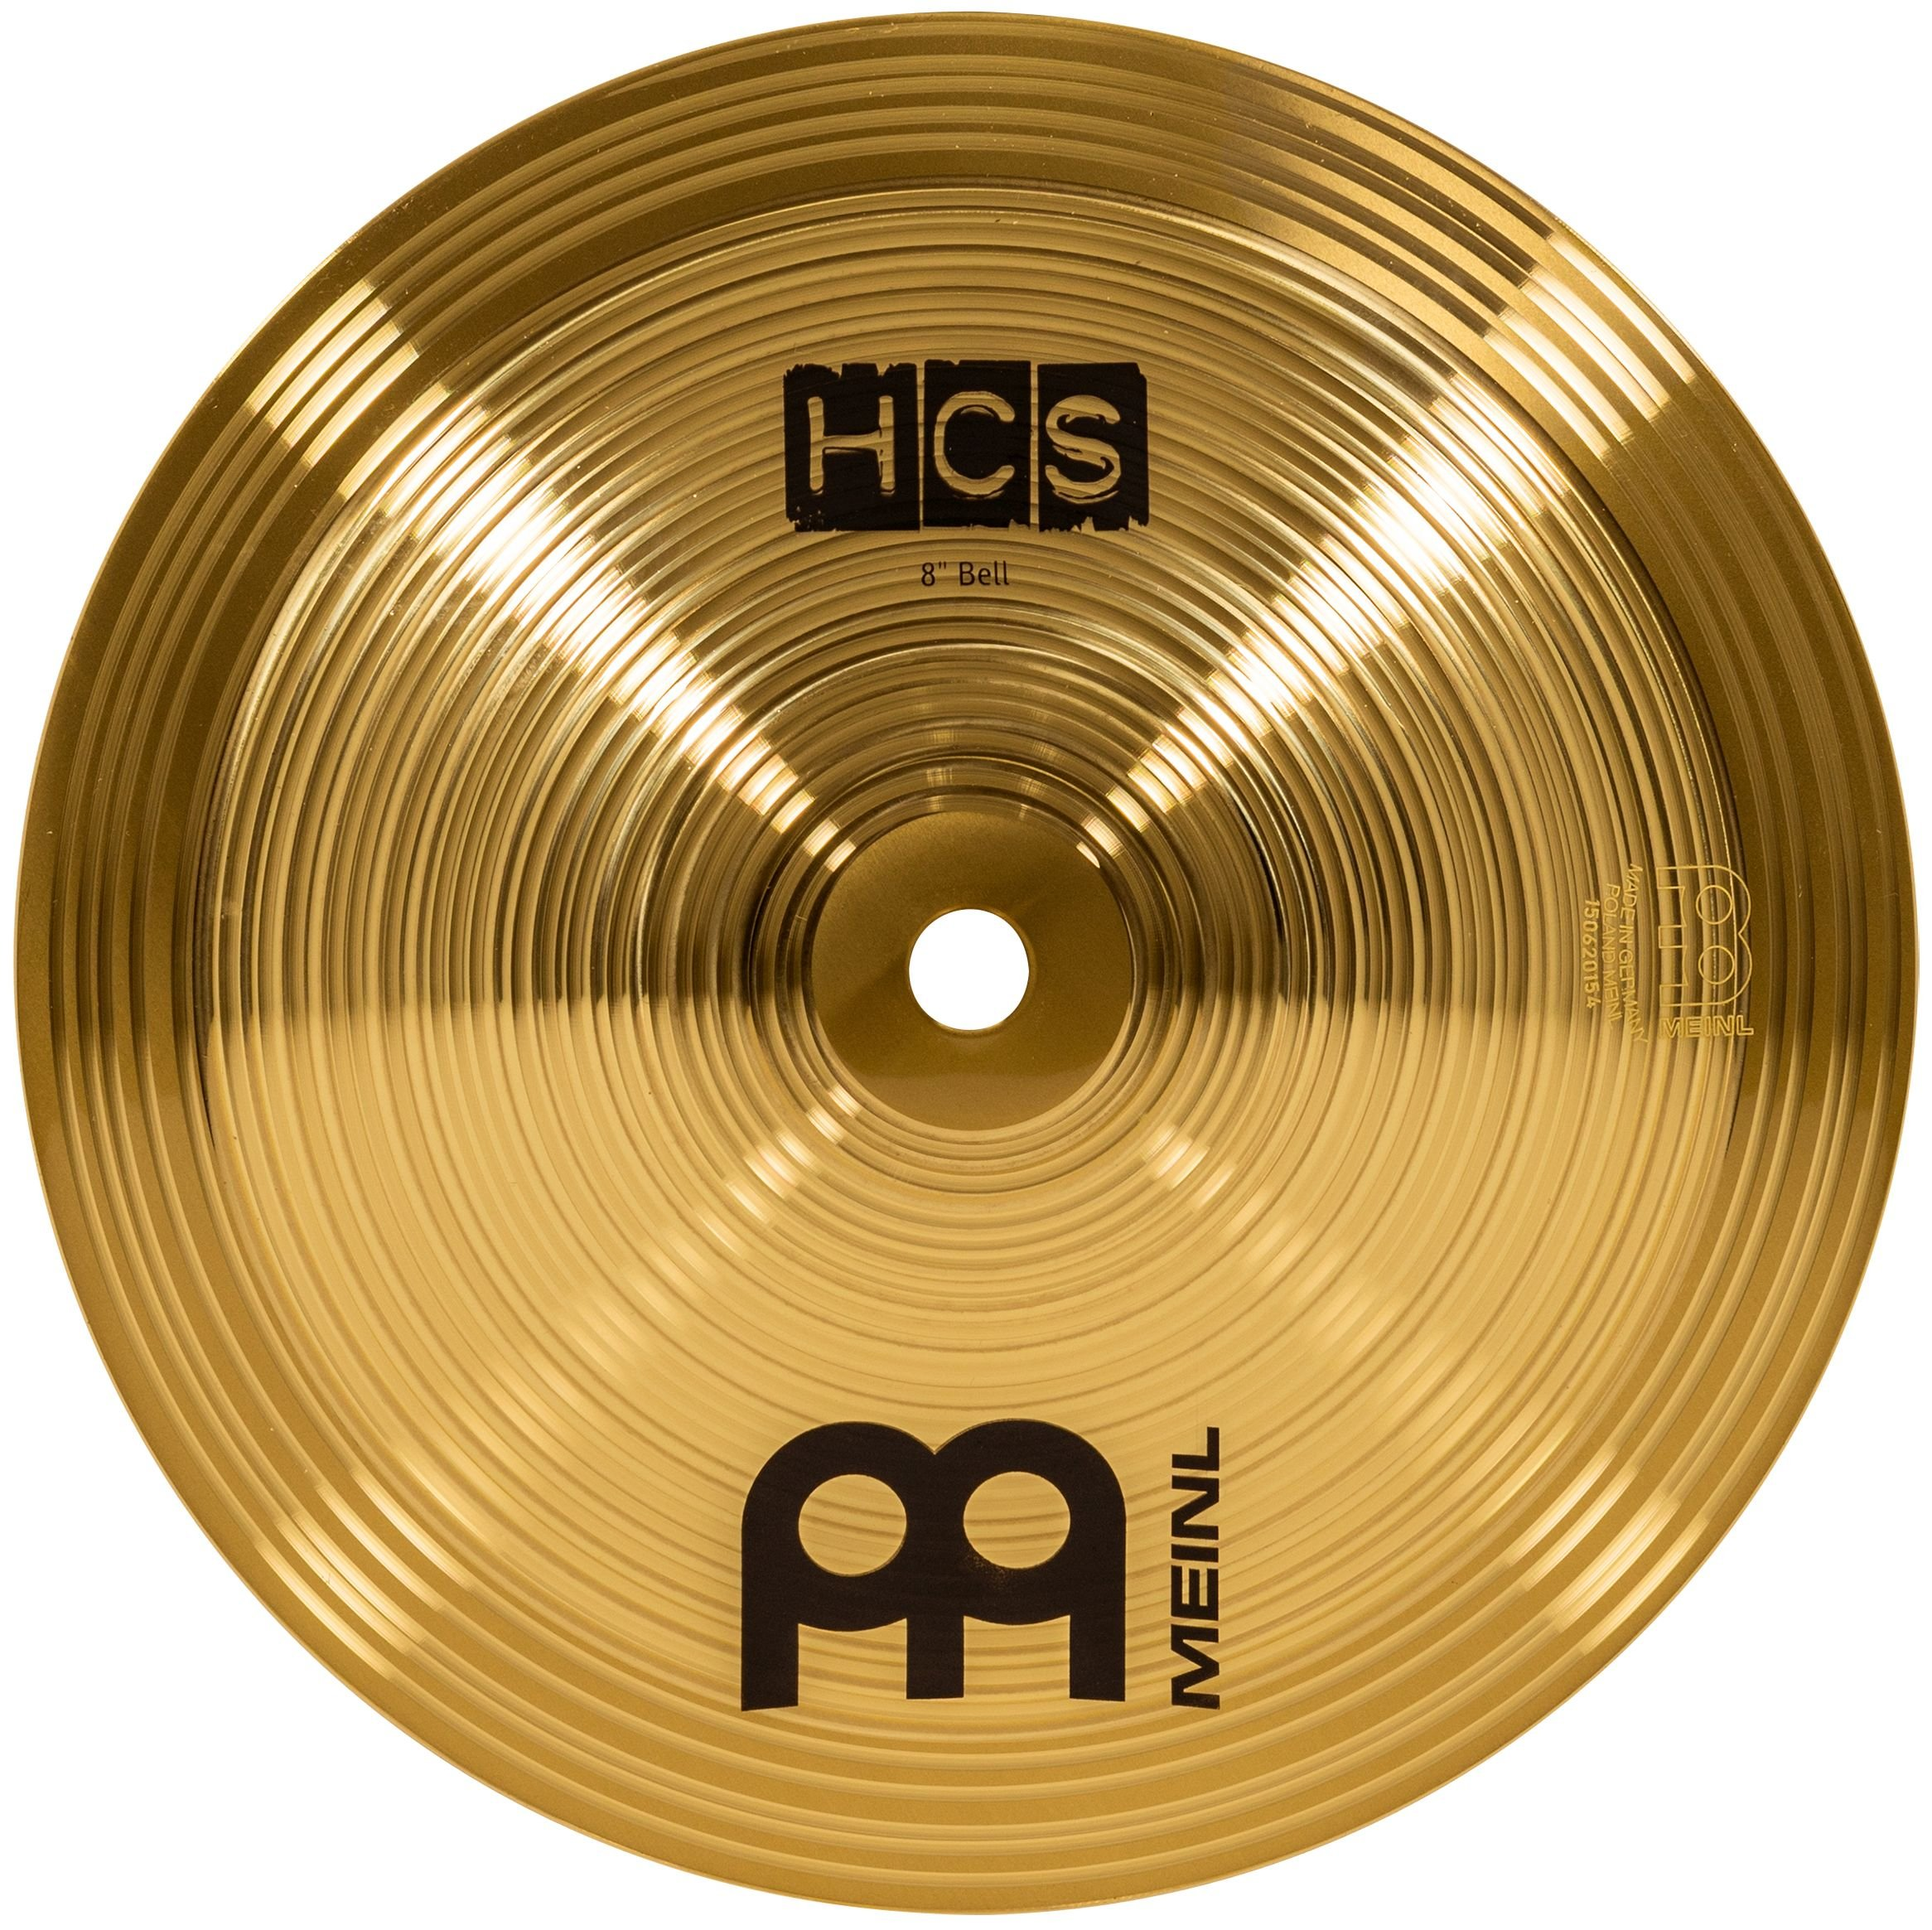 Meinl 8'' Bell - HCS Traditional Finish Brass for Drum Set, Made In Germany, 2-YEAR WARRANTY (HCS8B) by Meinl Cymbals